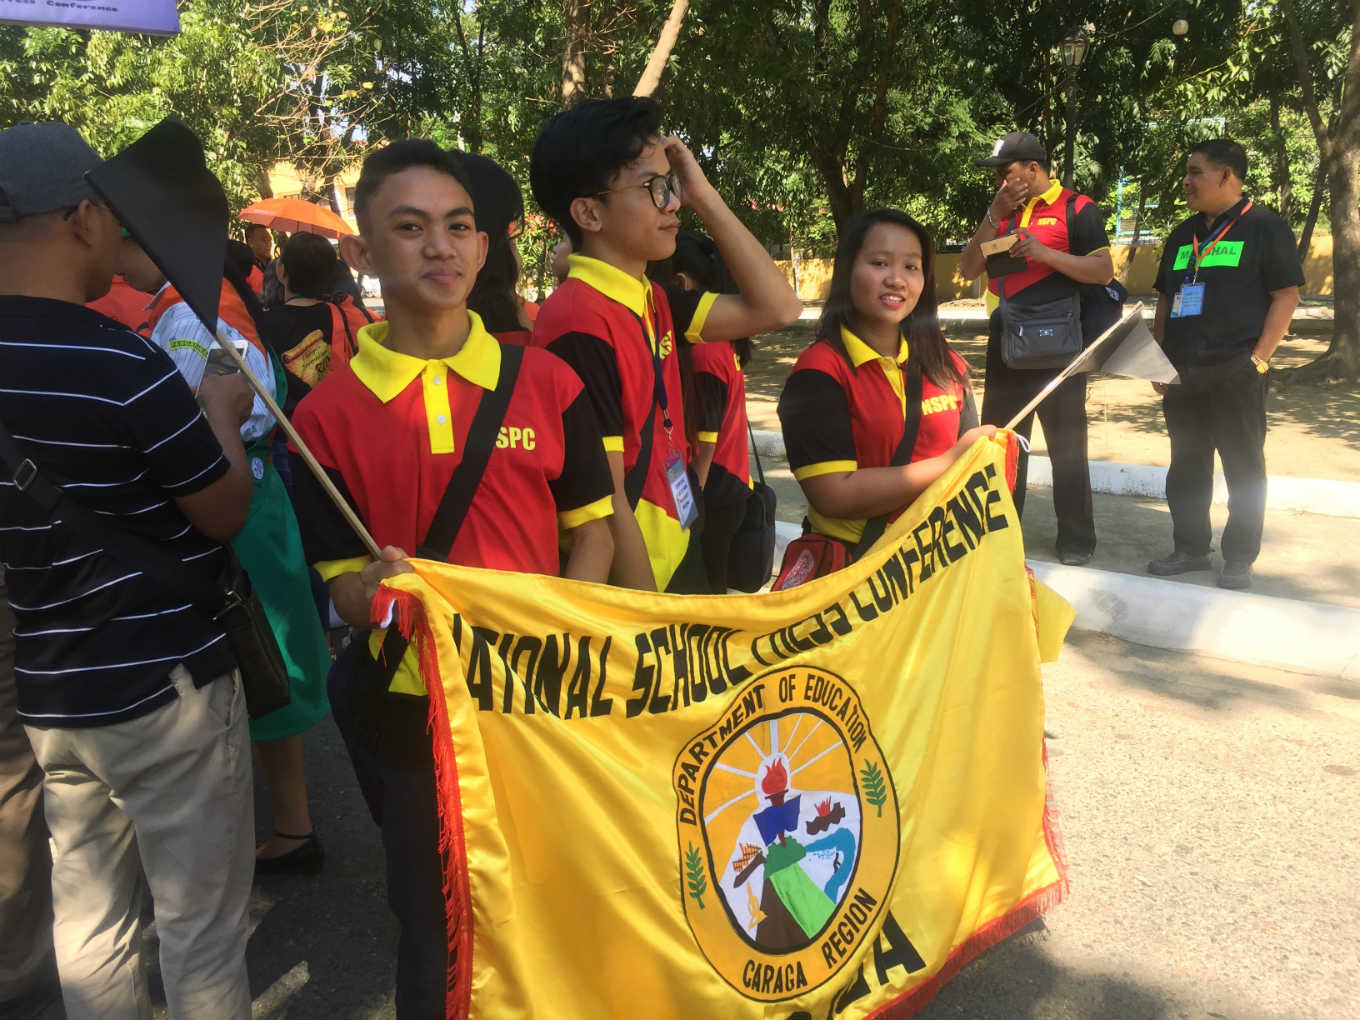 GOING FOR GOLD. Caraga Region delegates wait for their turn in entering Narciso Ramos Sports Complex in Lingayen, Pangasinan for the opening ceremonies. Photo from Jourknows